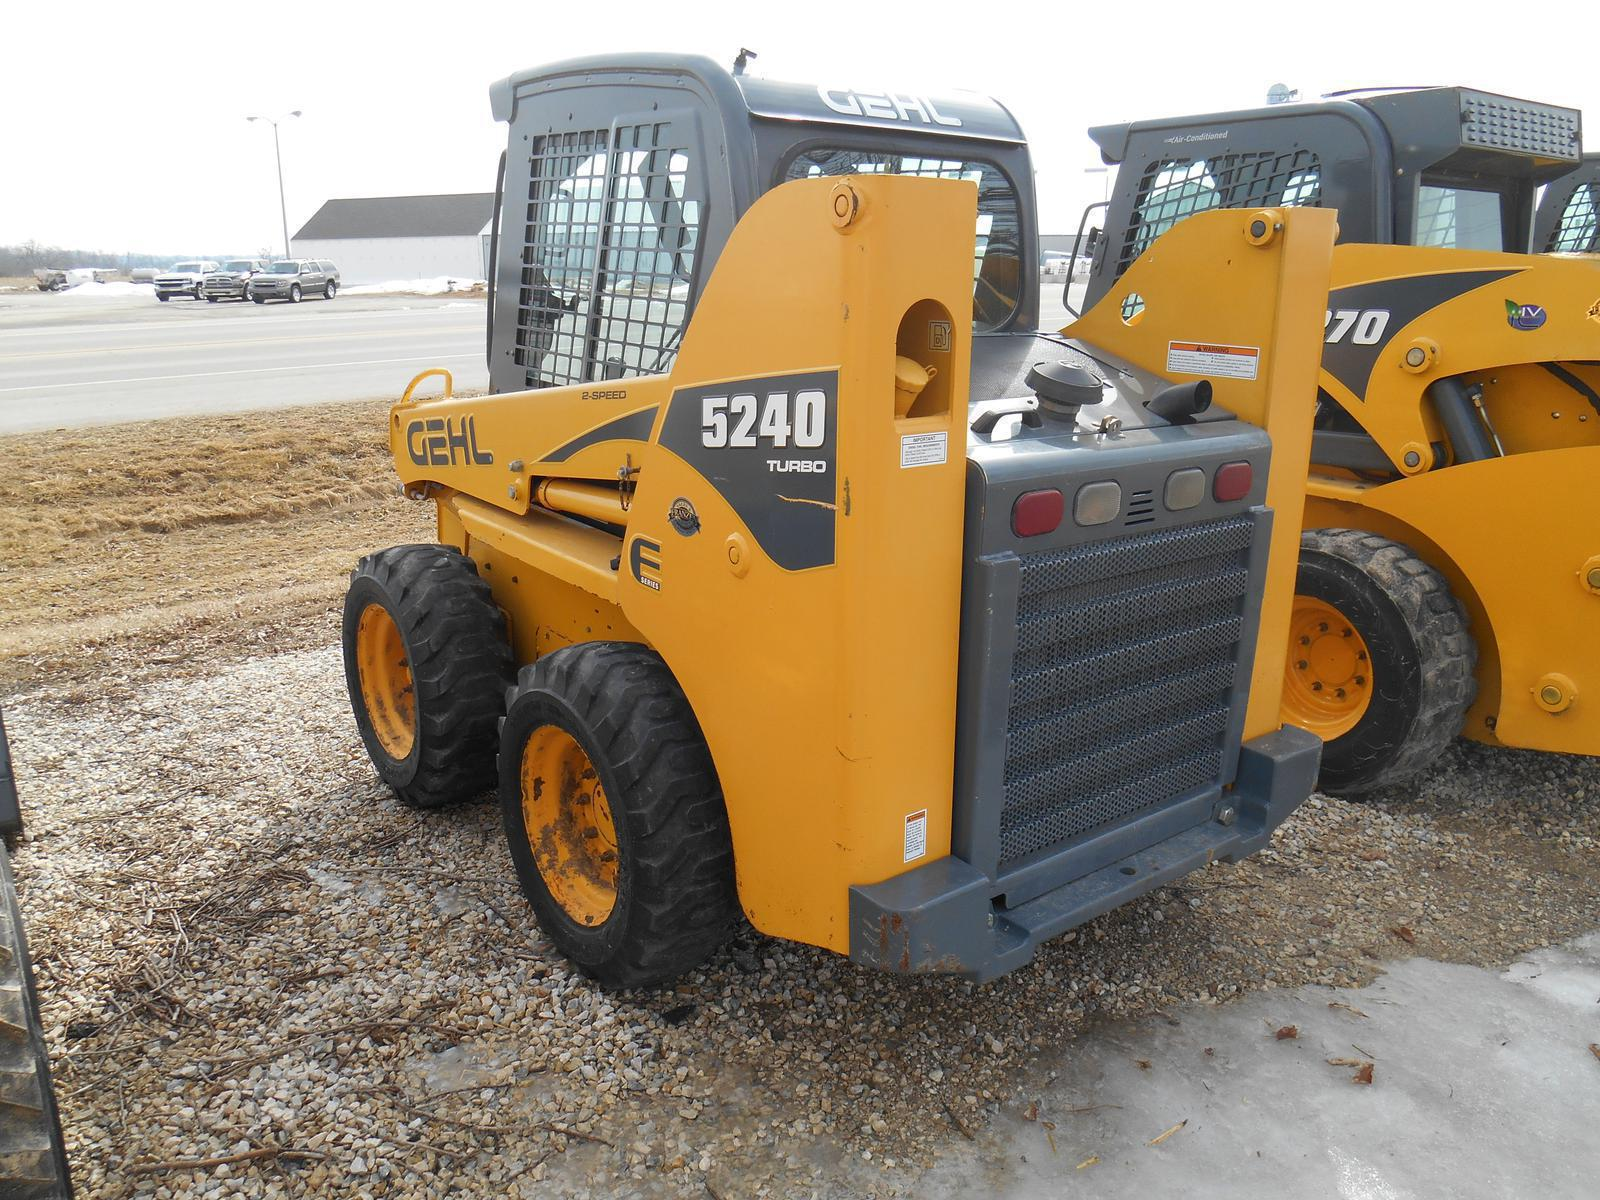 Inventory from Bobcat and Gehl Franzen Sales & Service Fort